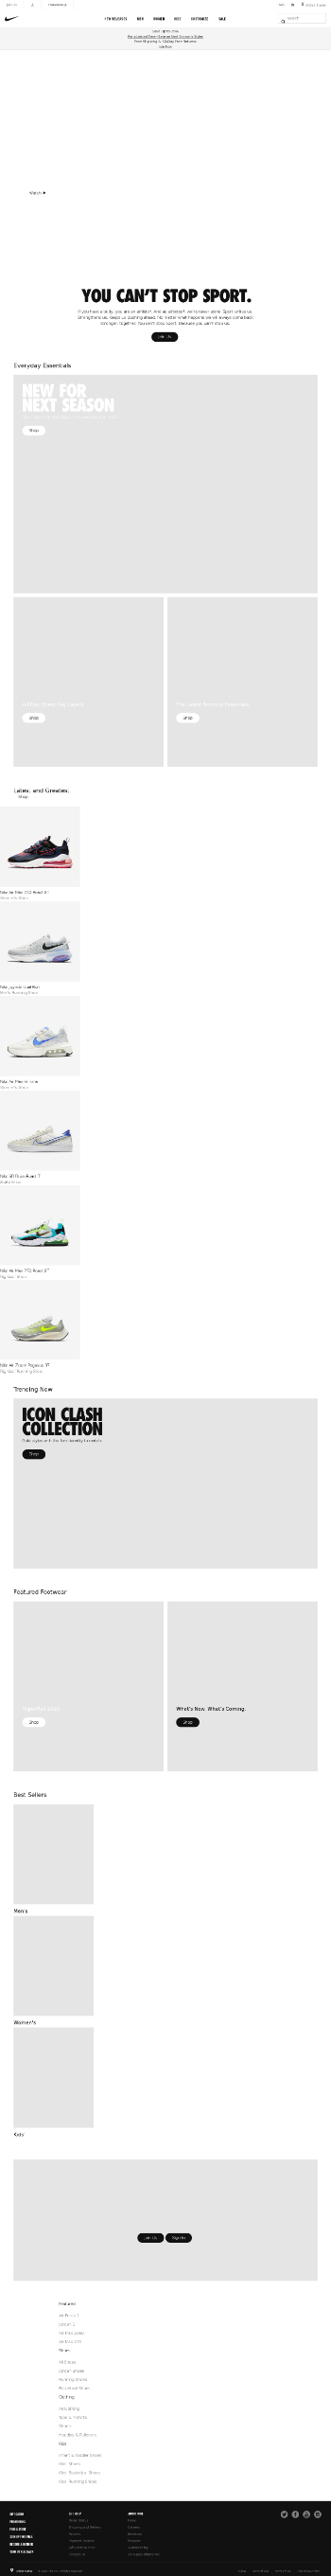 NIKE, Inc. Website Screenshot